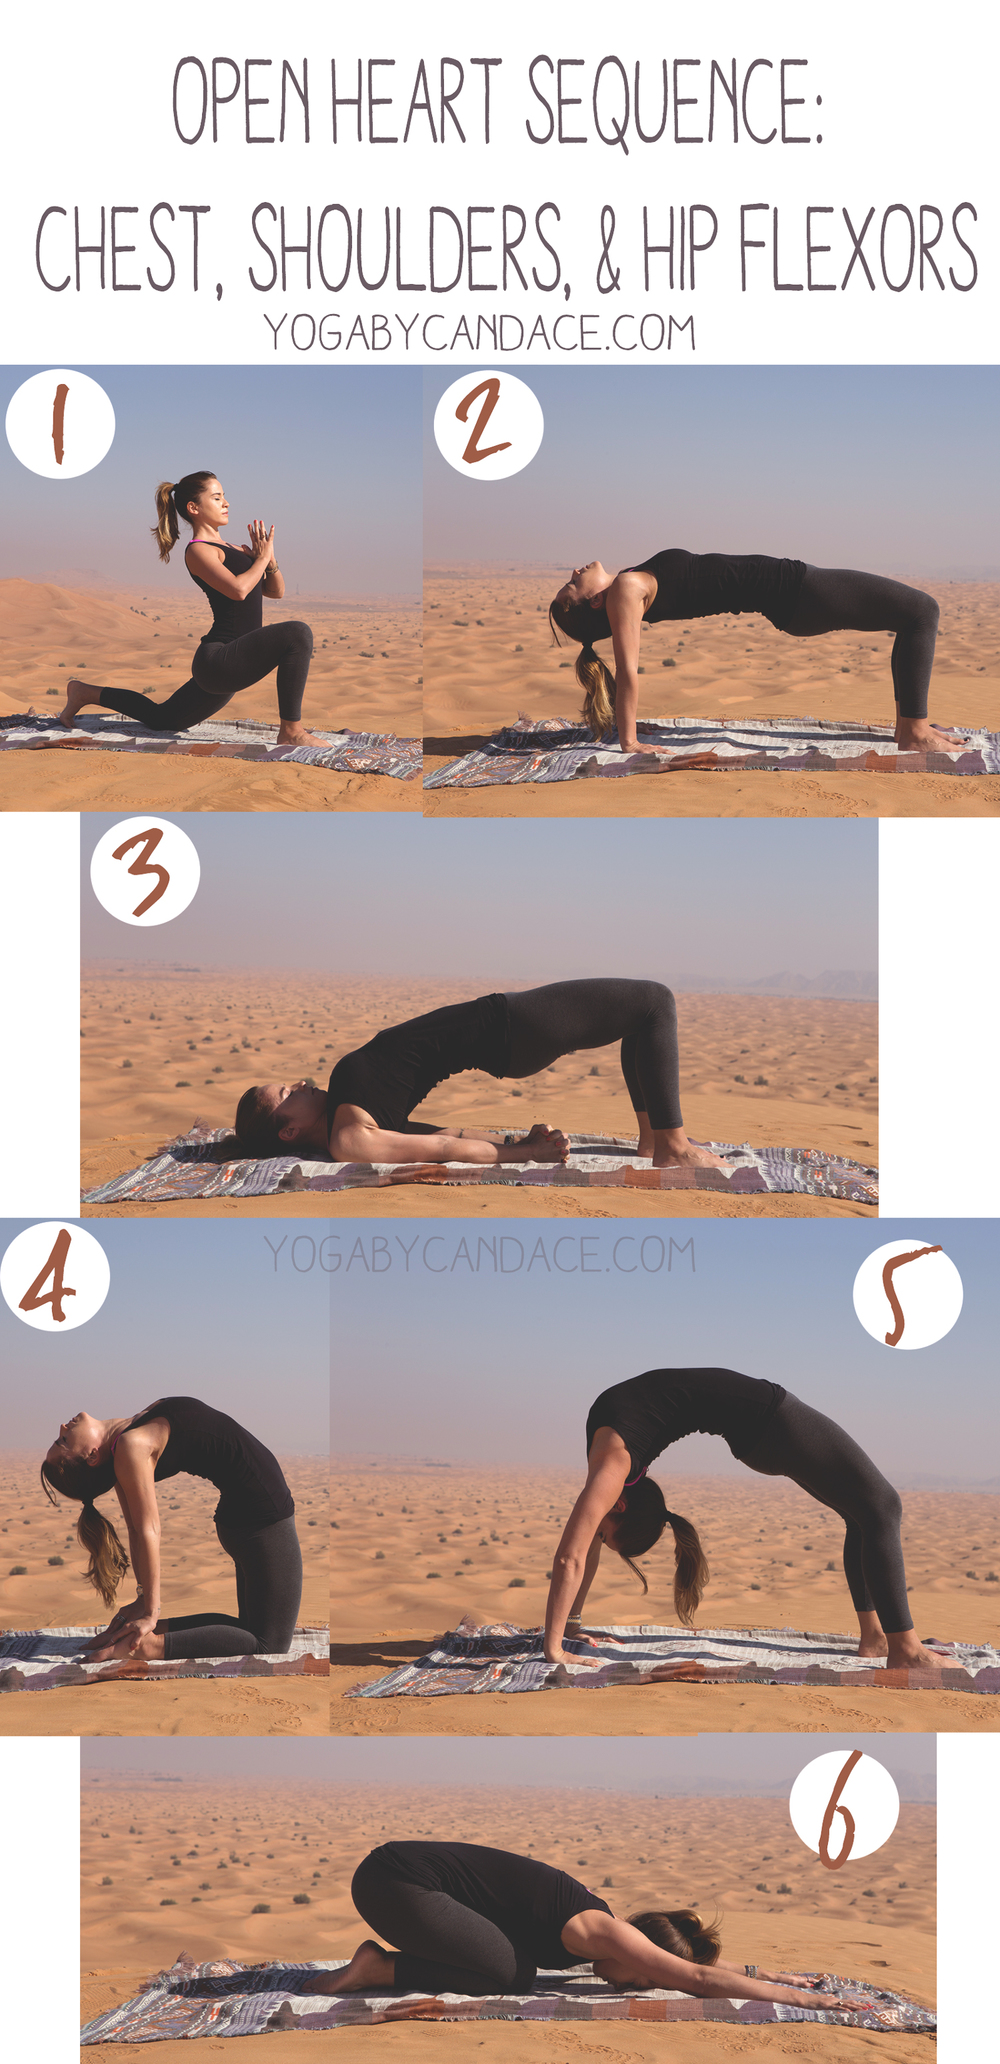 Pin now, practice later! Open heart yoga sequence. Wearing: f21 leggings, splendid top. Using: zara scarf as mat (similar)